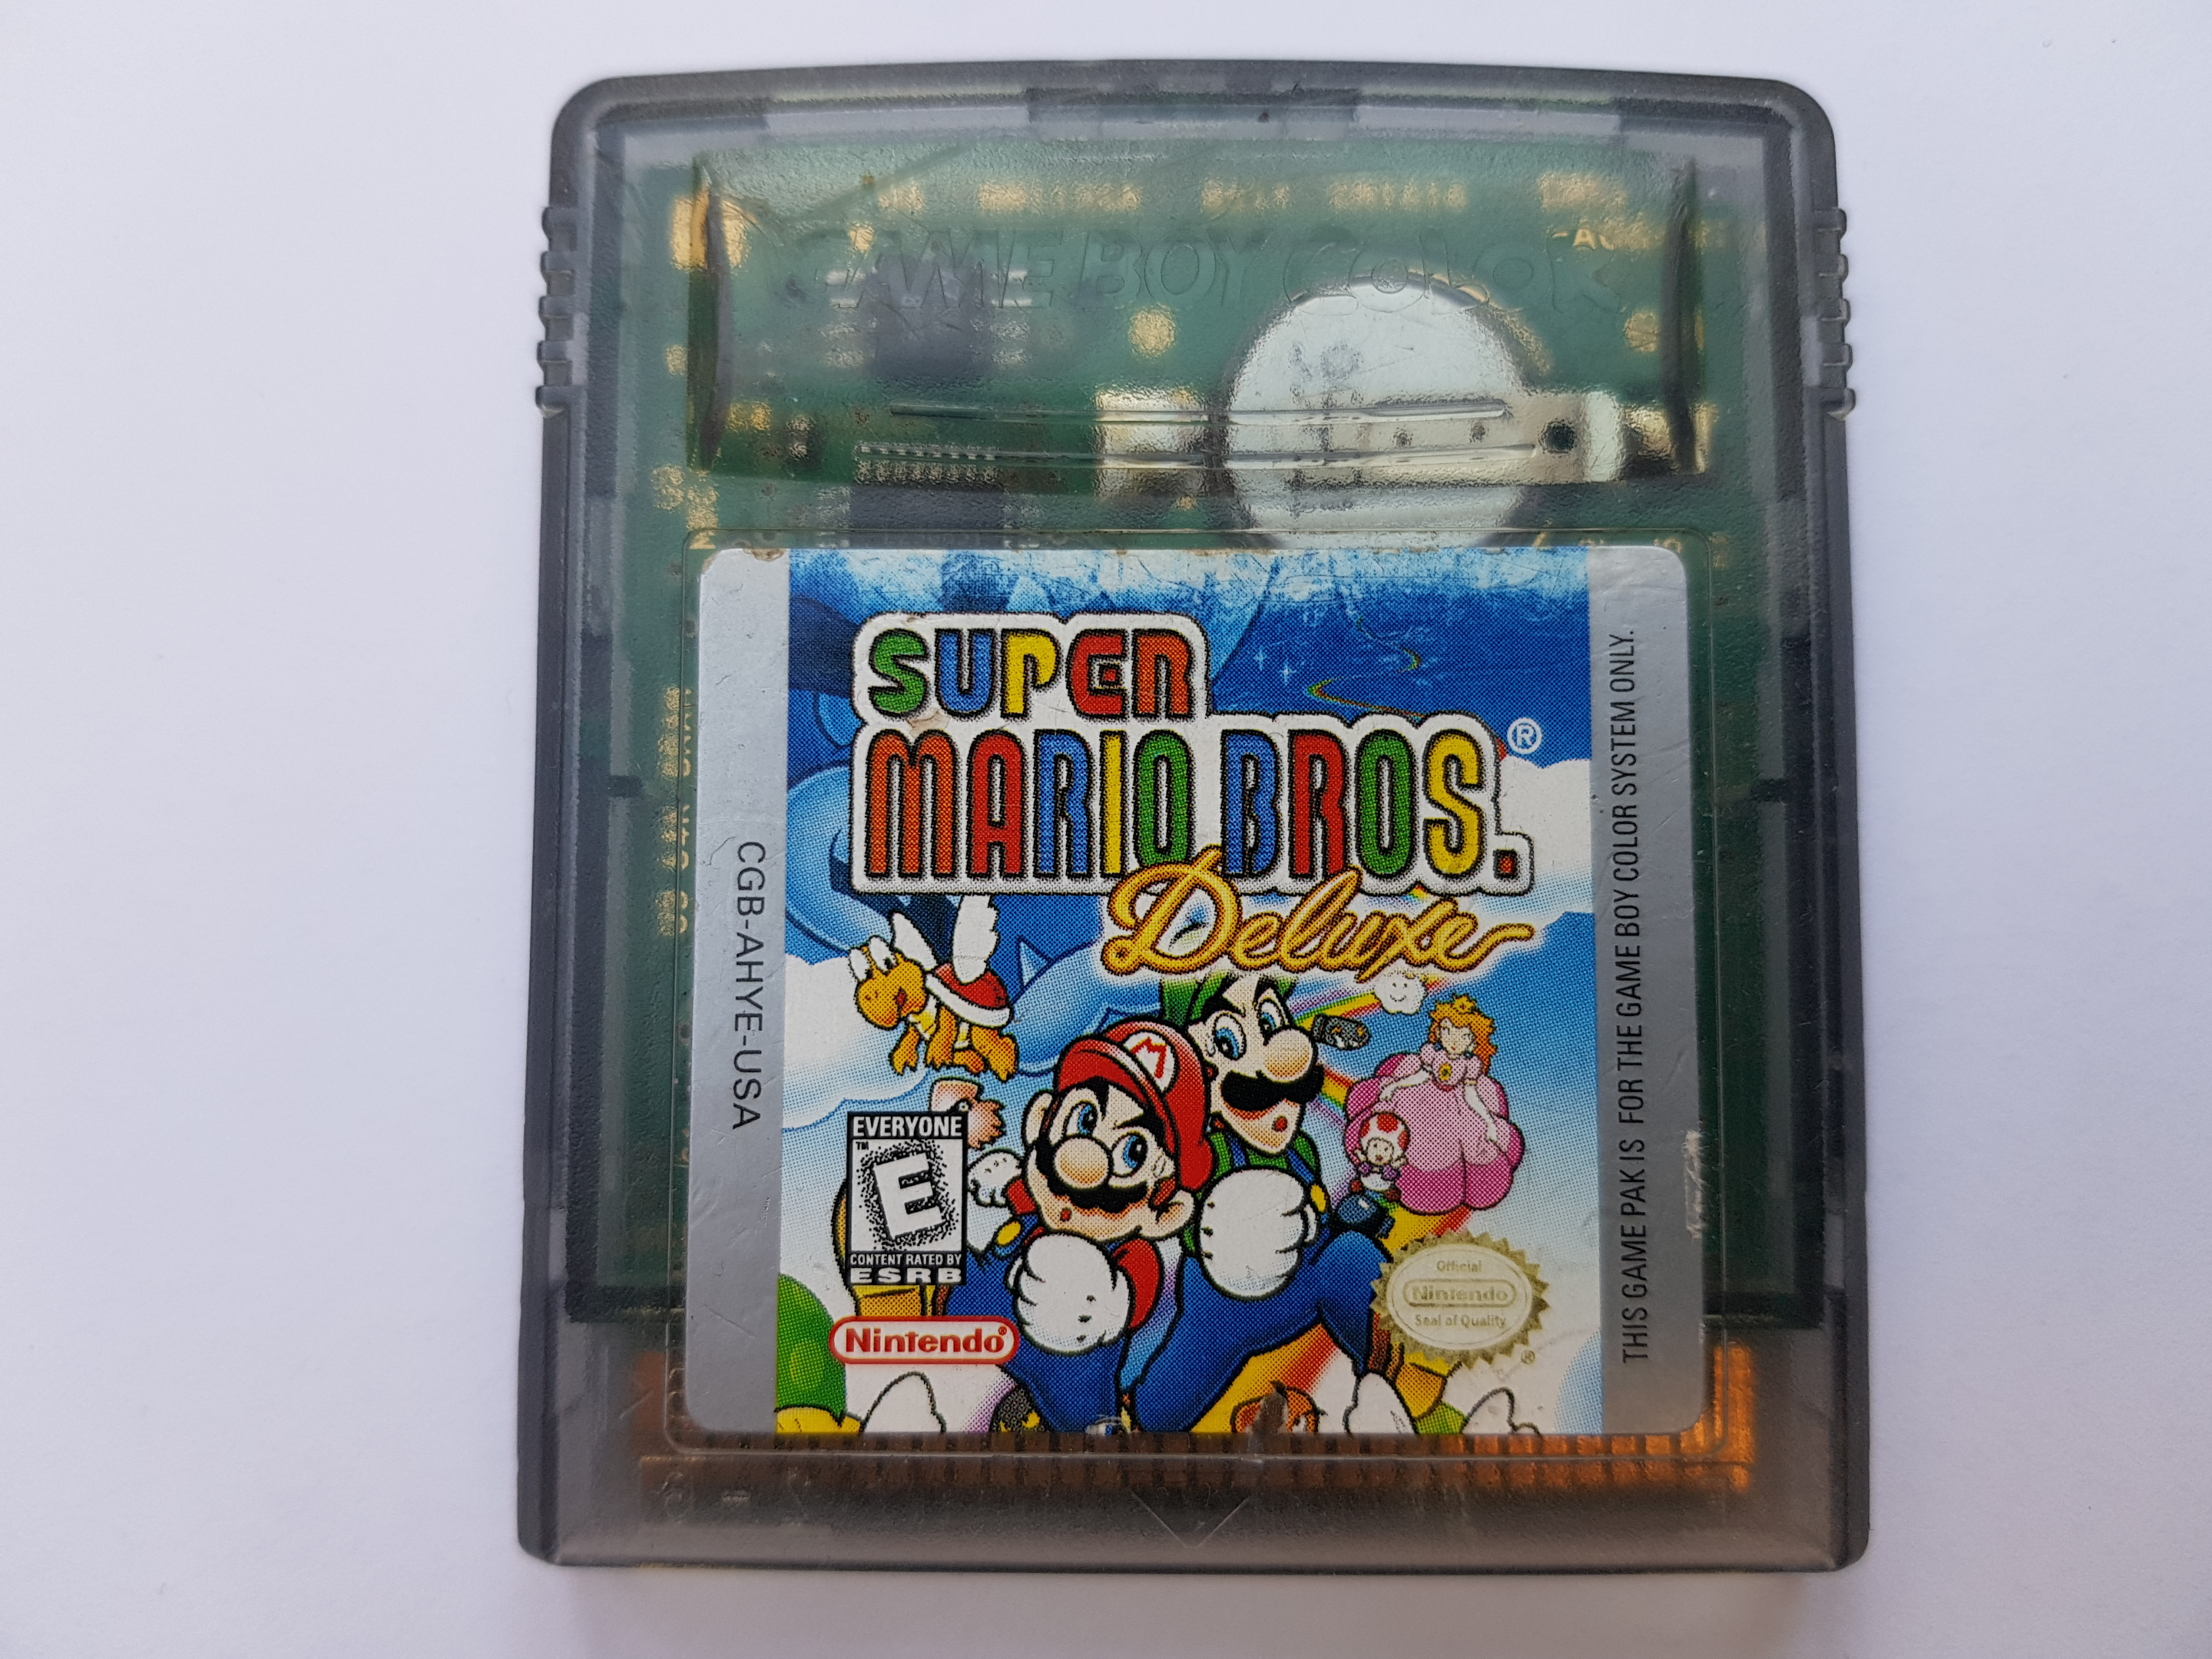 Buy Gbcolor Super Mario Bros Deluxe games Used Preowned